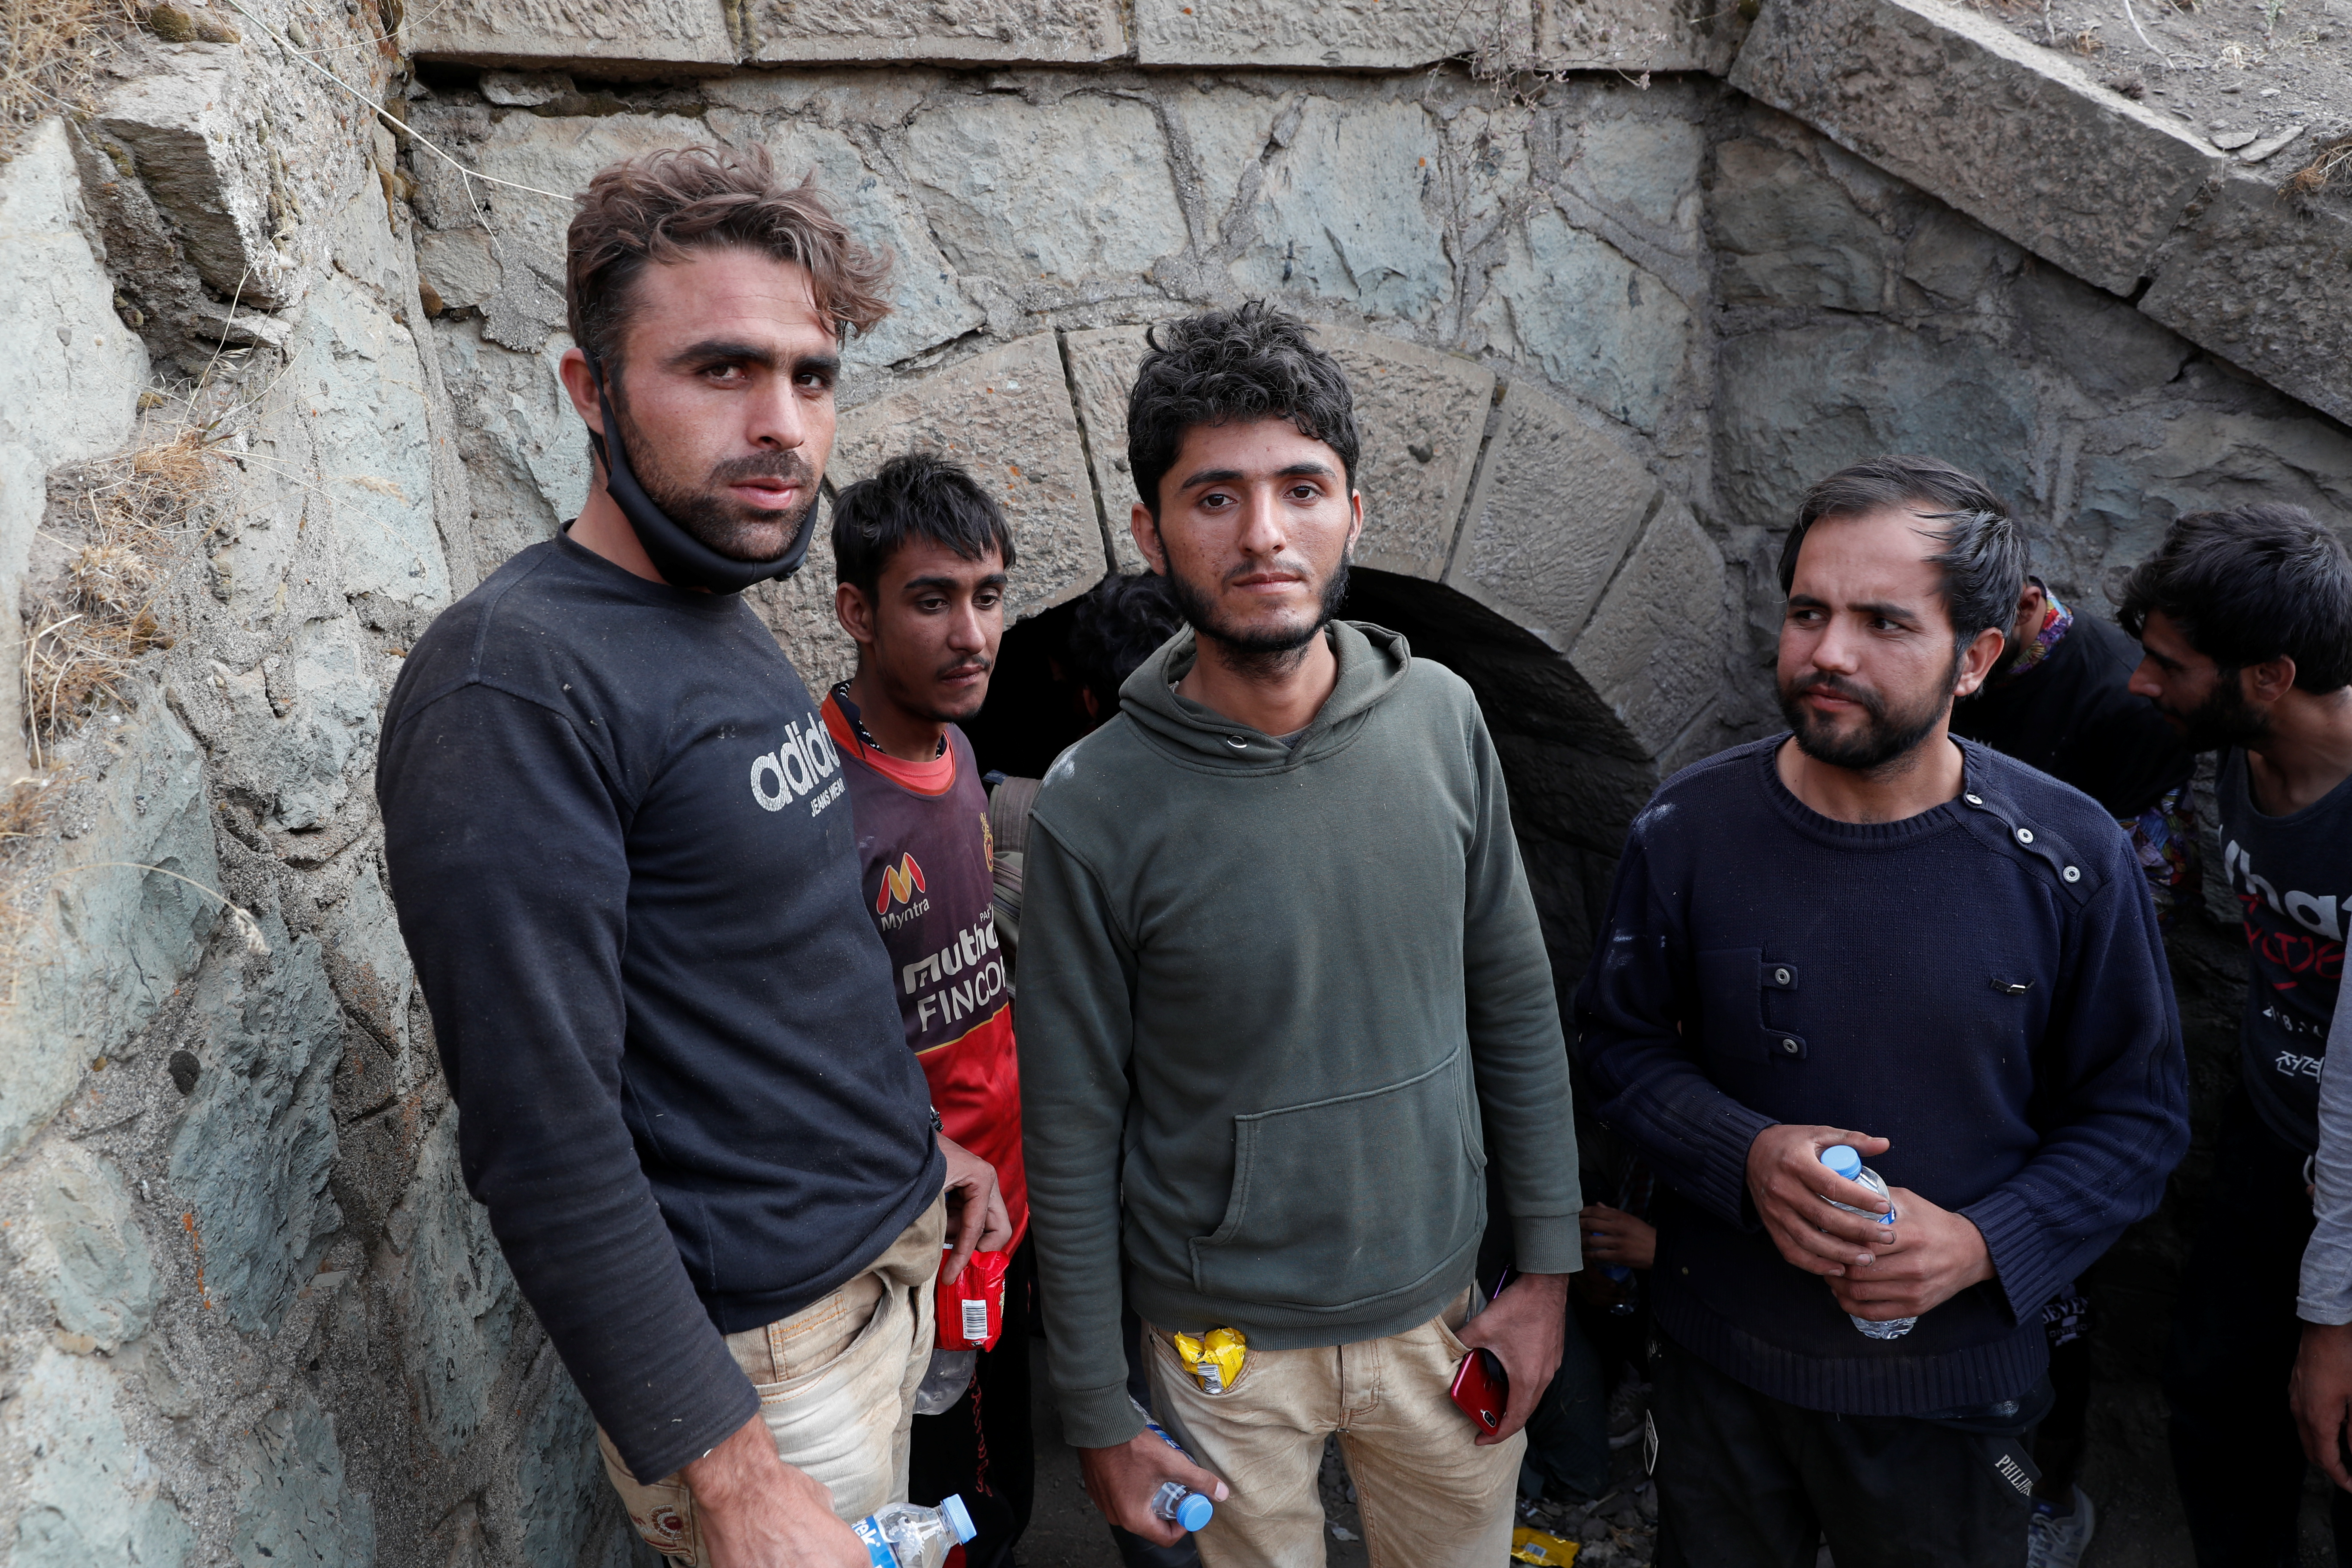 Muhammad Ali, an Afghan migrant from Khost who planned to found his own cryptocurrency mining business, center, and the other migrants hide from security forces after crossing illegally into Turkey from Iran, near Tatvan in Bitlis province, Turkey August 23, 2021. REUTERS/Murad Sezer